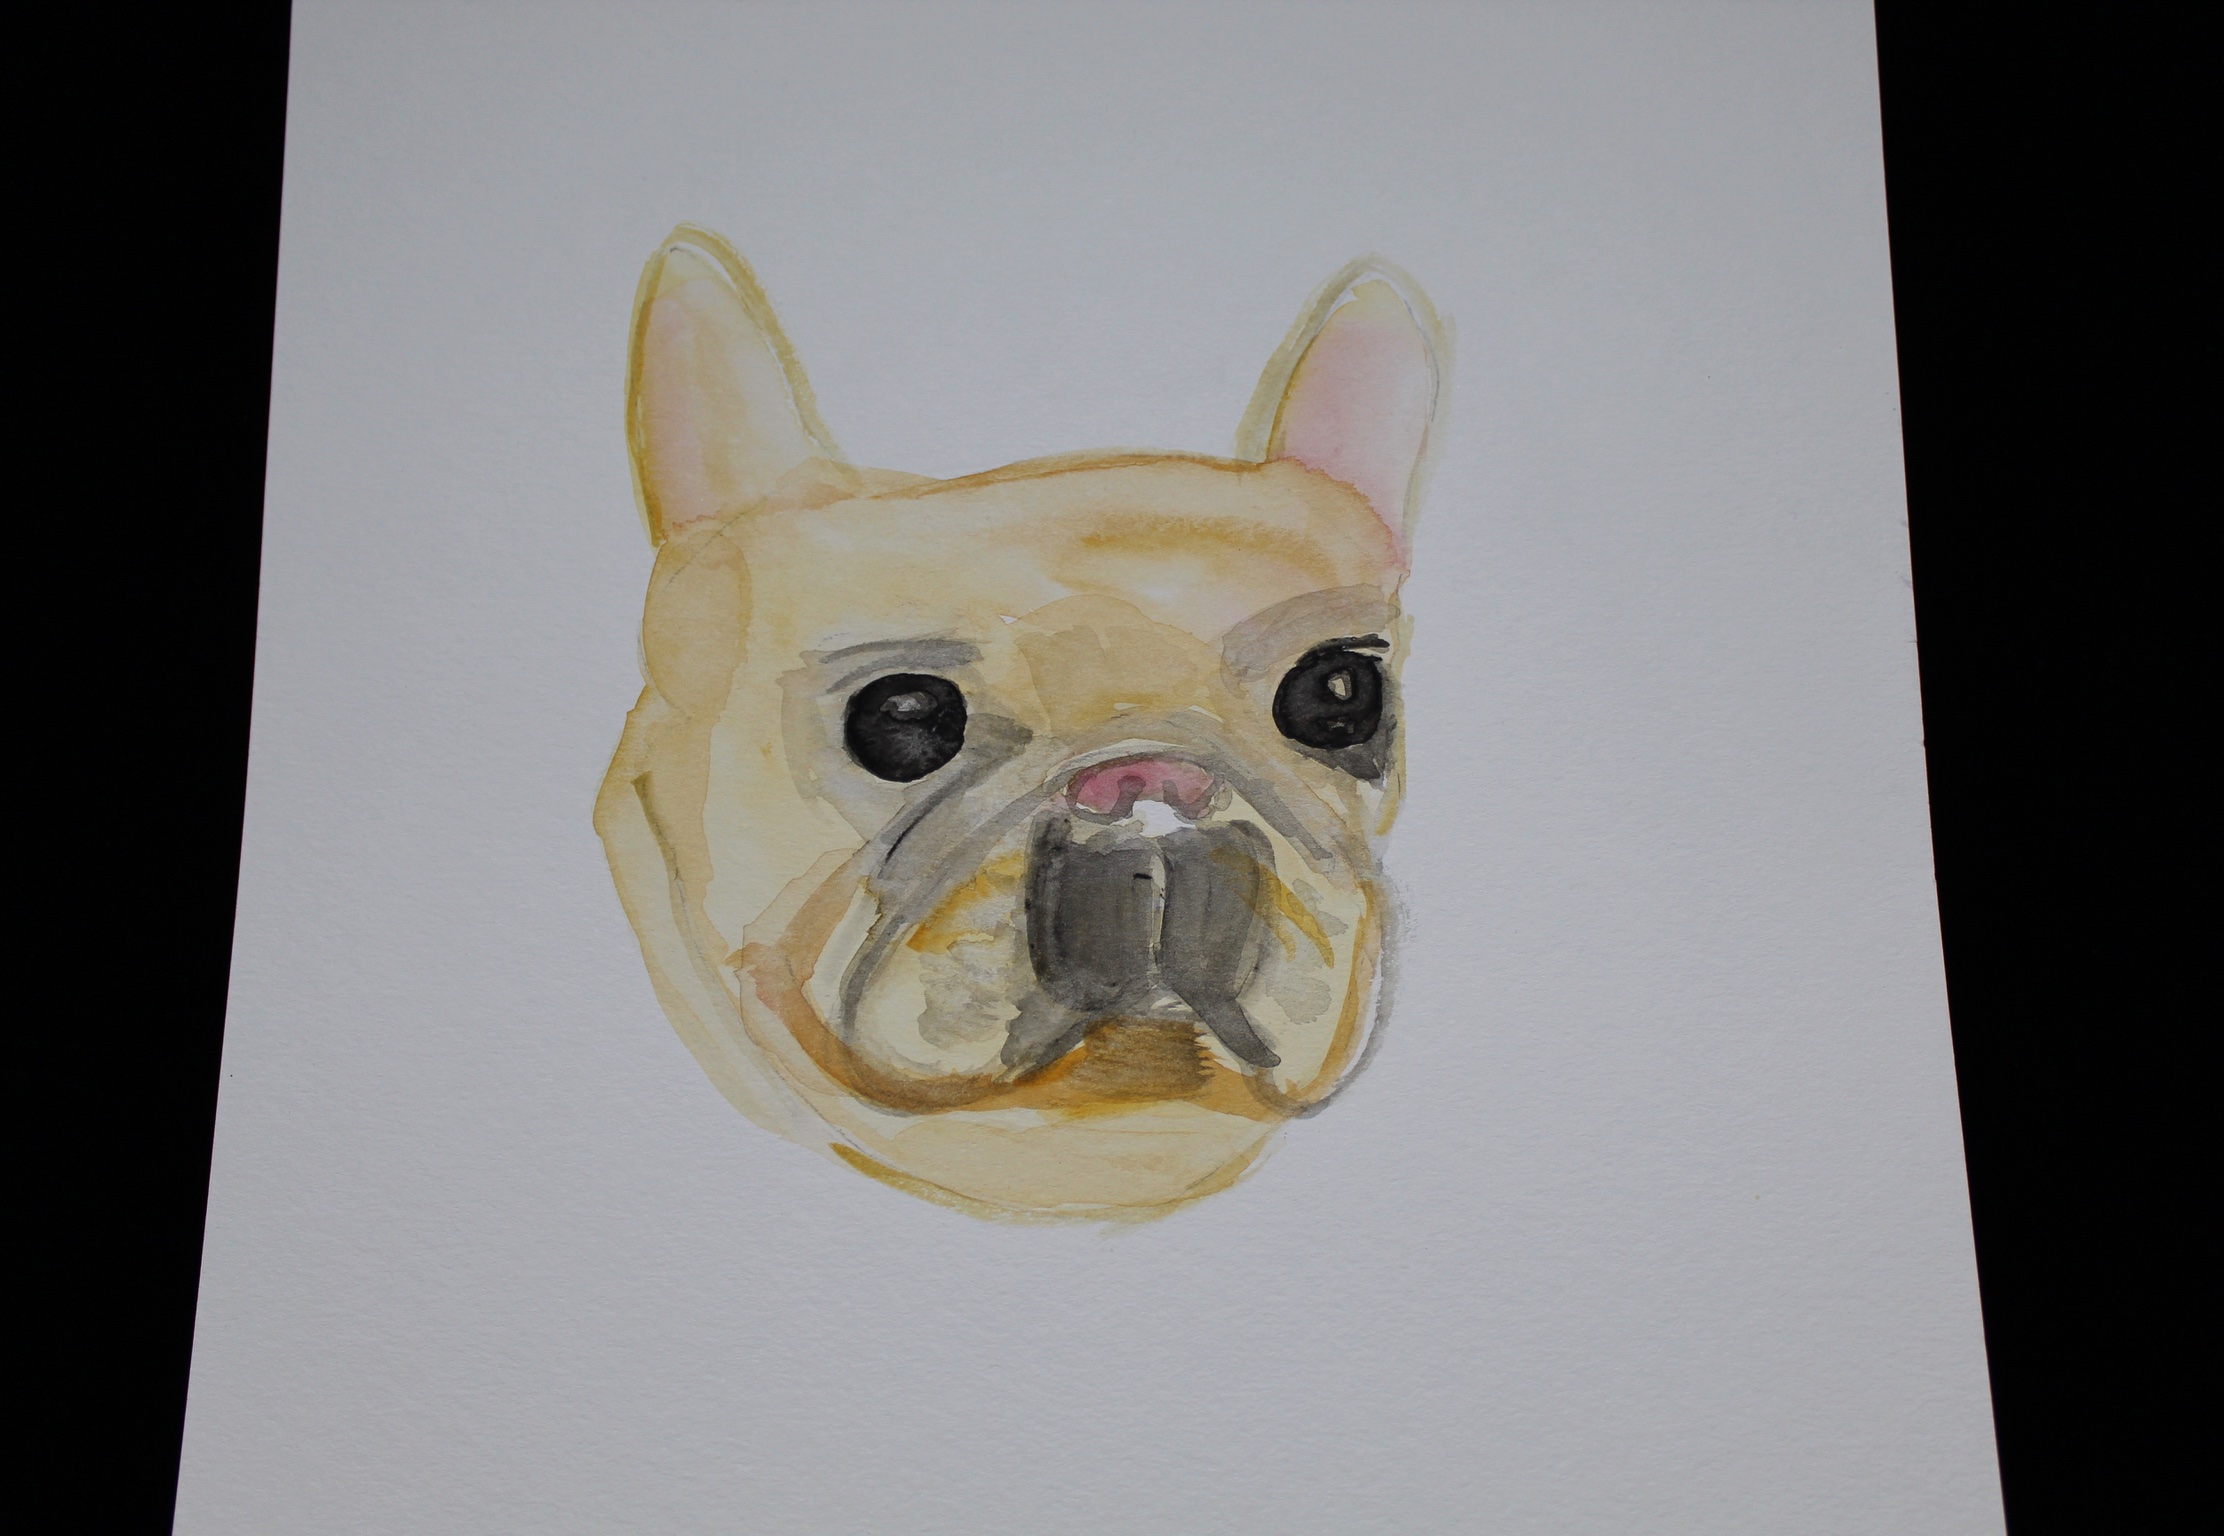 Maeby the Frenchie